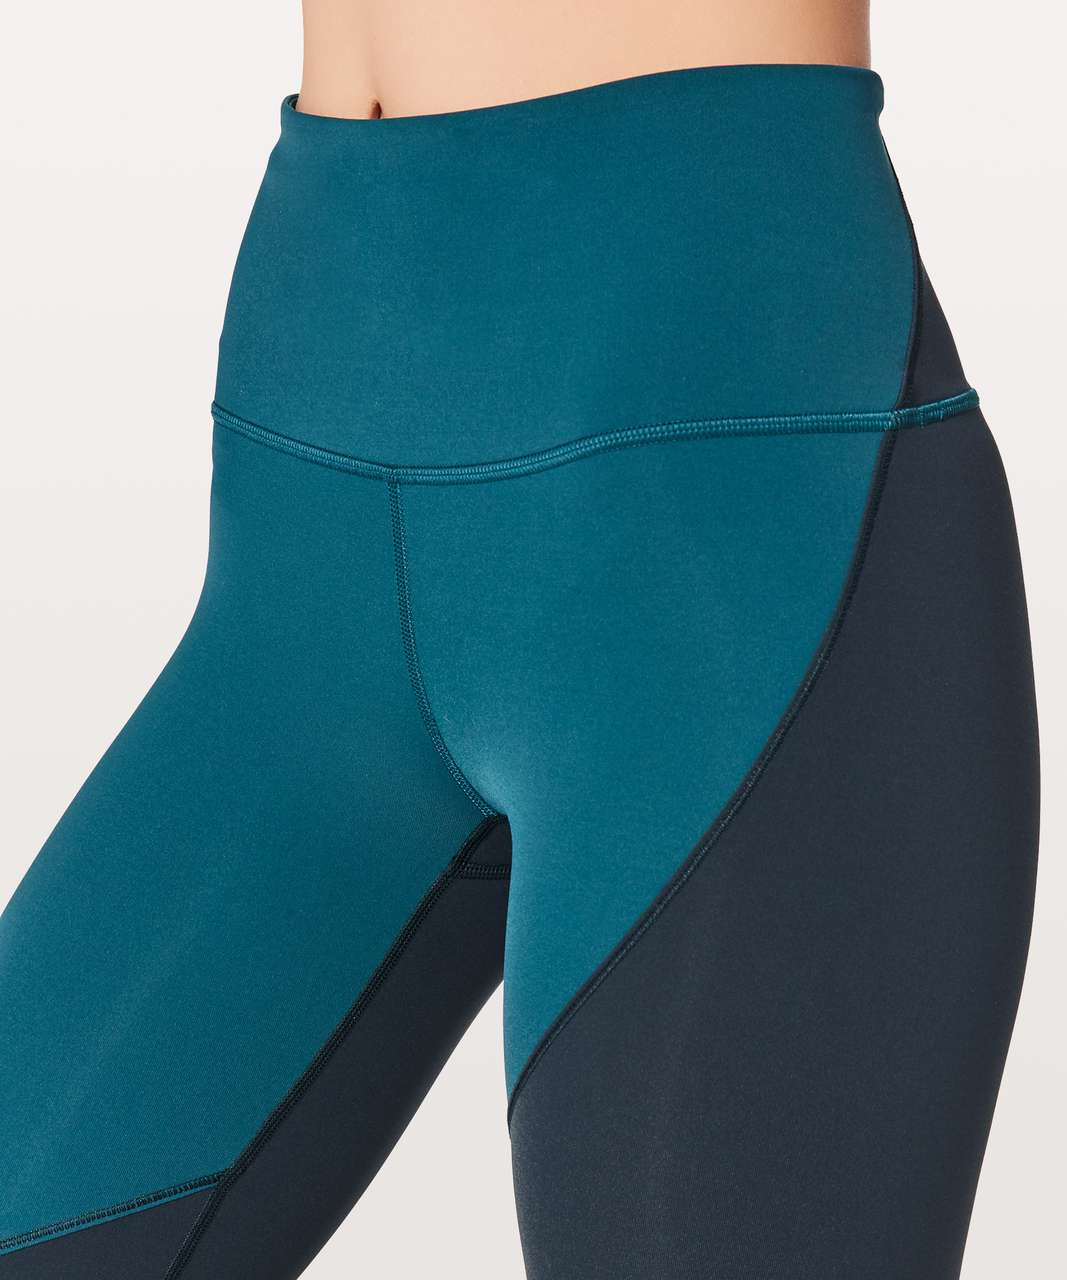 "Lululemon Wunder Under Hi-Rise 7/8 Tight (Special Edition) 25"" - Nile Blue / Nocturnal Teal / Persian Blue"